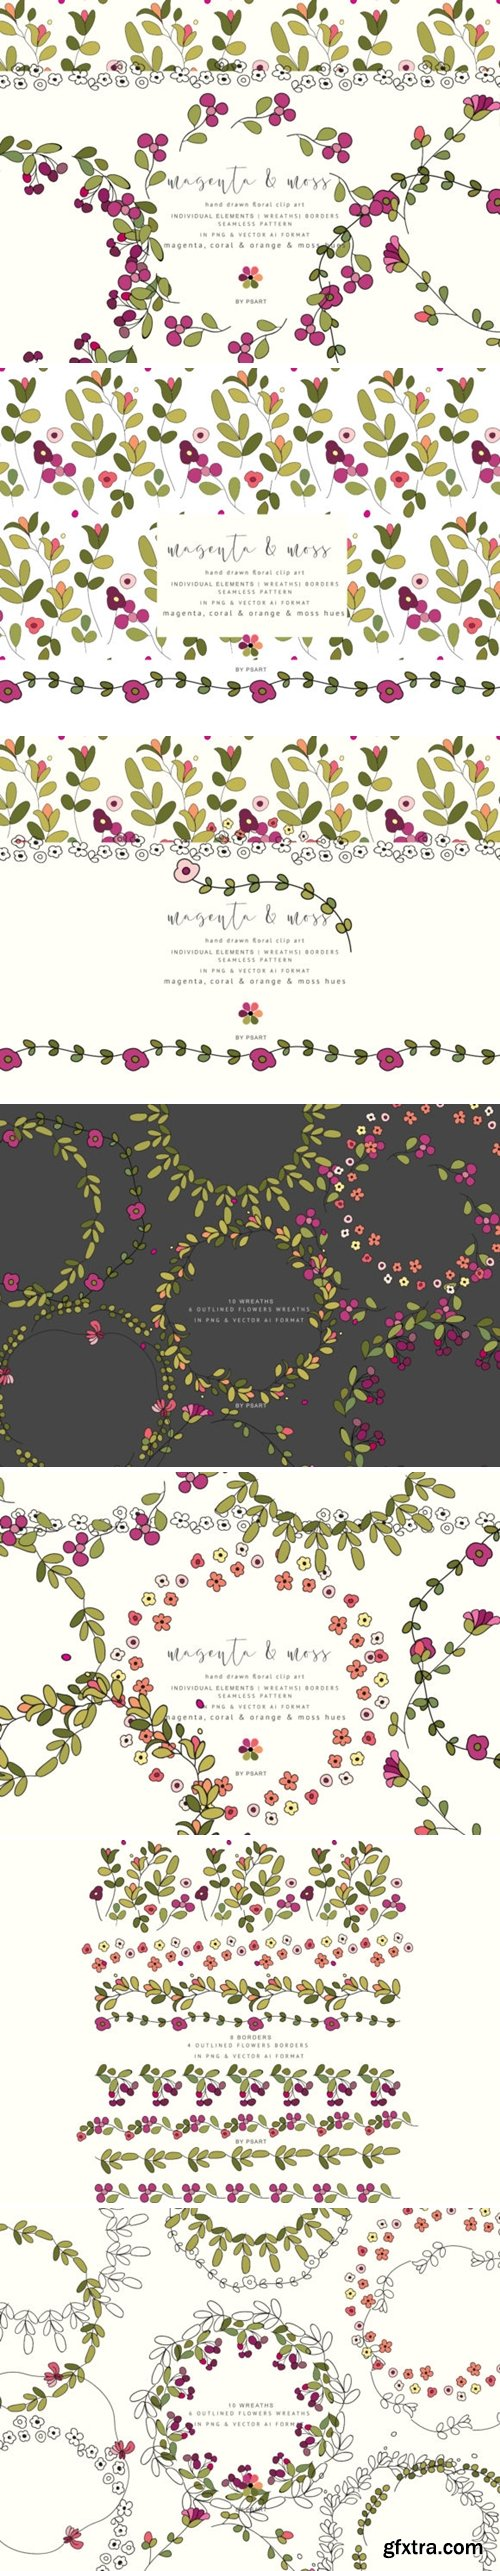 Colorful Hand-Draw Flowers Clipart 1348608